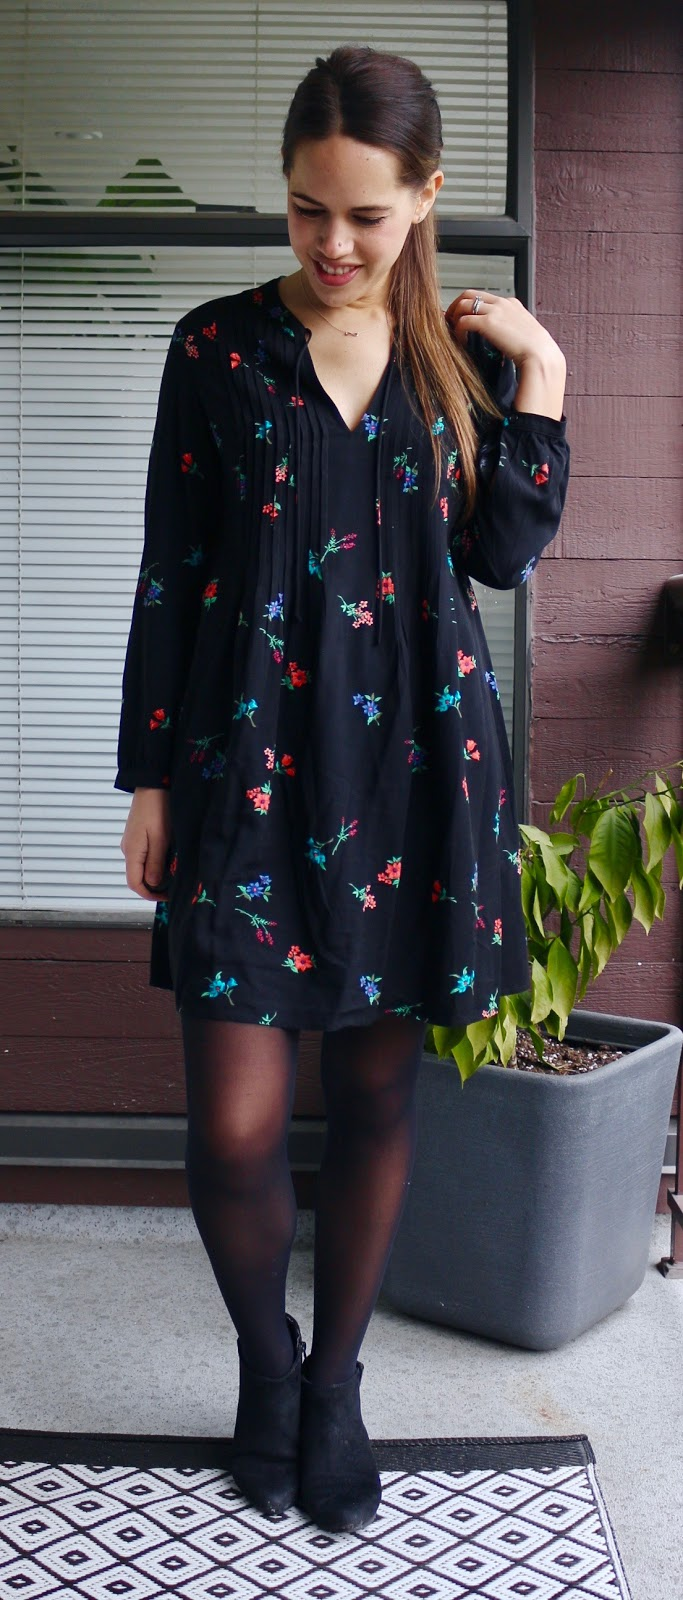 Jules in Flats - Transitioning to Spring with Dark Florals